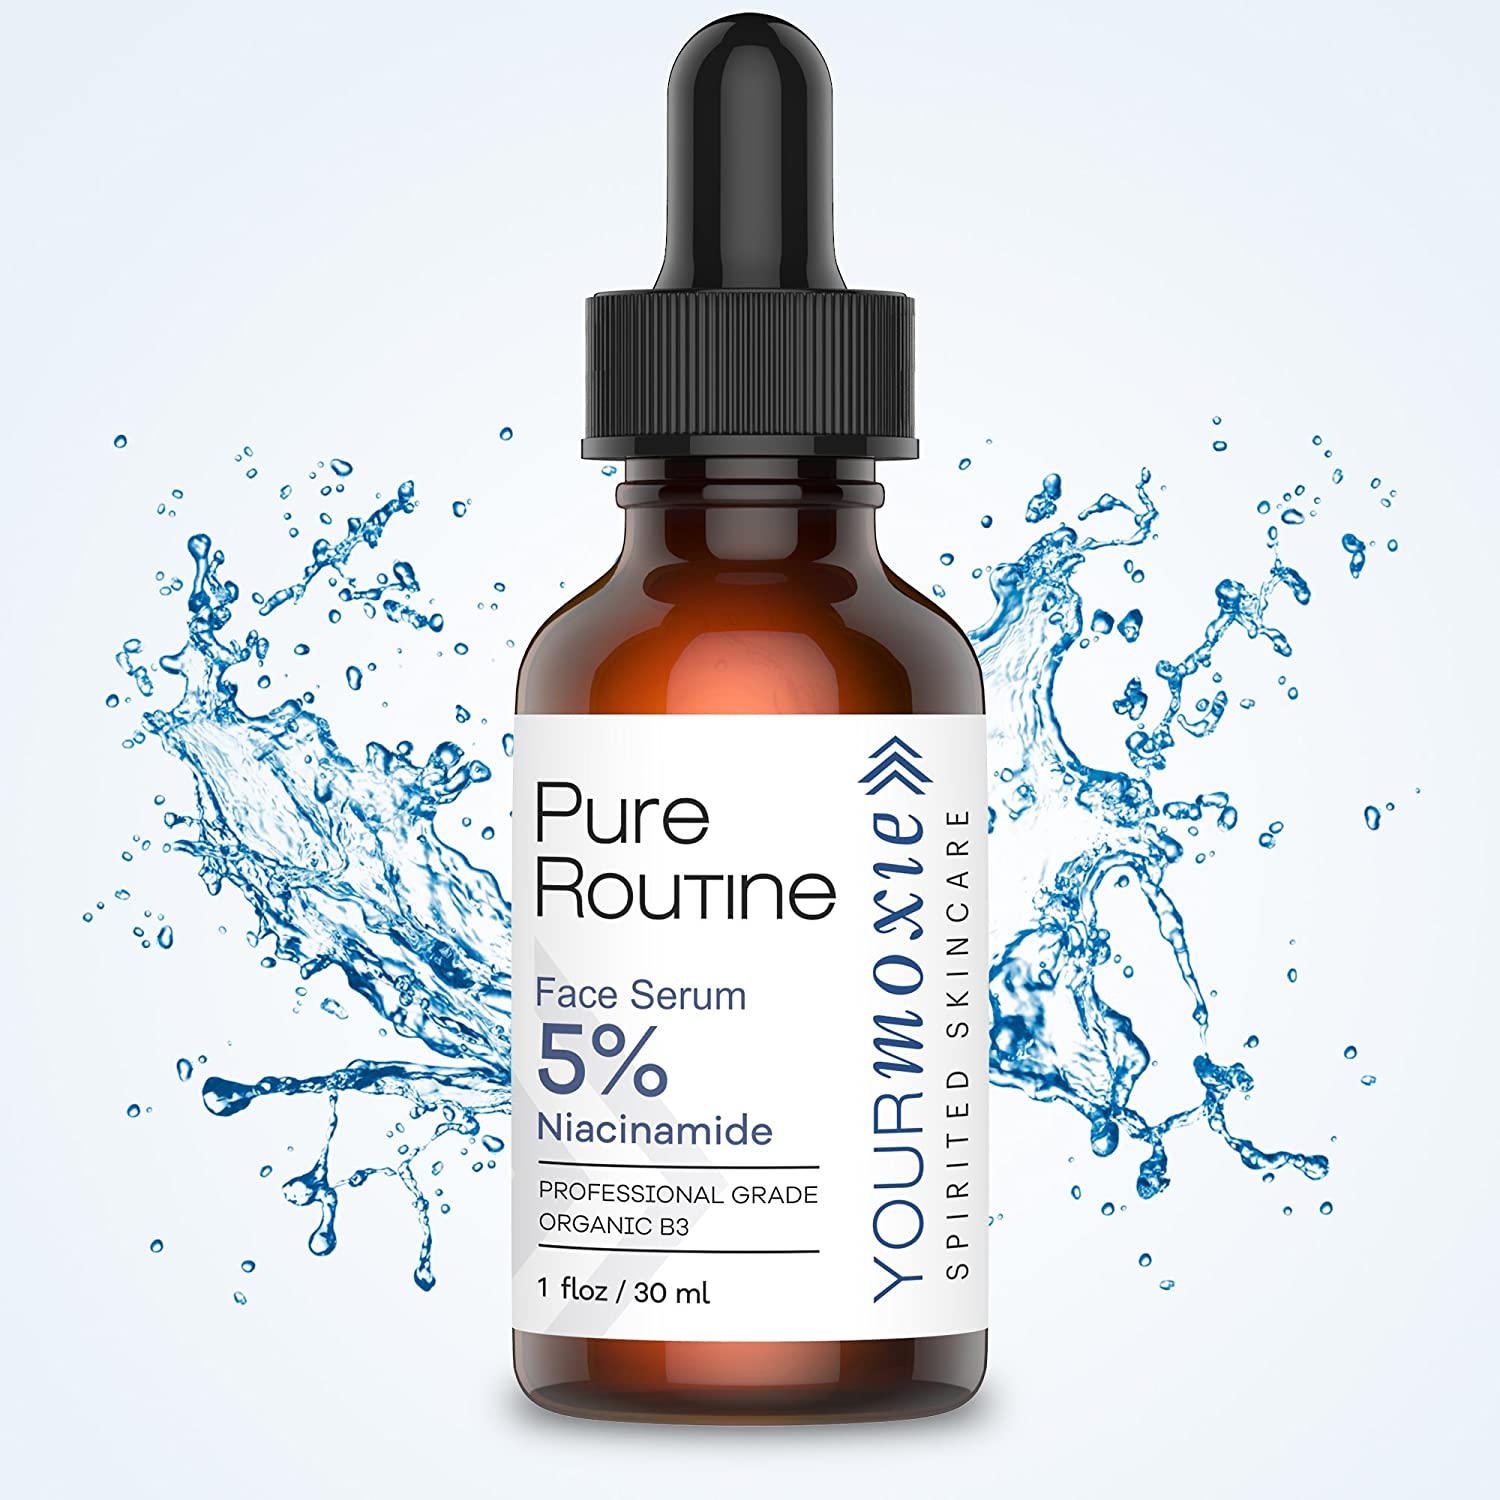 Natural And Organic Niacinamide Face Serum Vitamin B3 Make Over Hydration 5 Hydrating That Builds Collagen For Anti Aging Great Wrinkle Reducer Acne